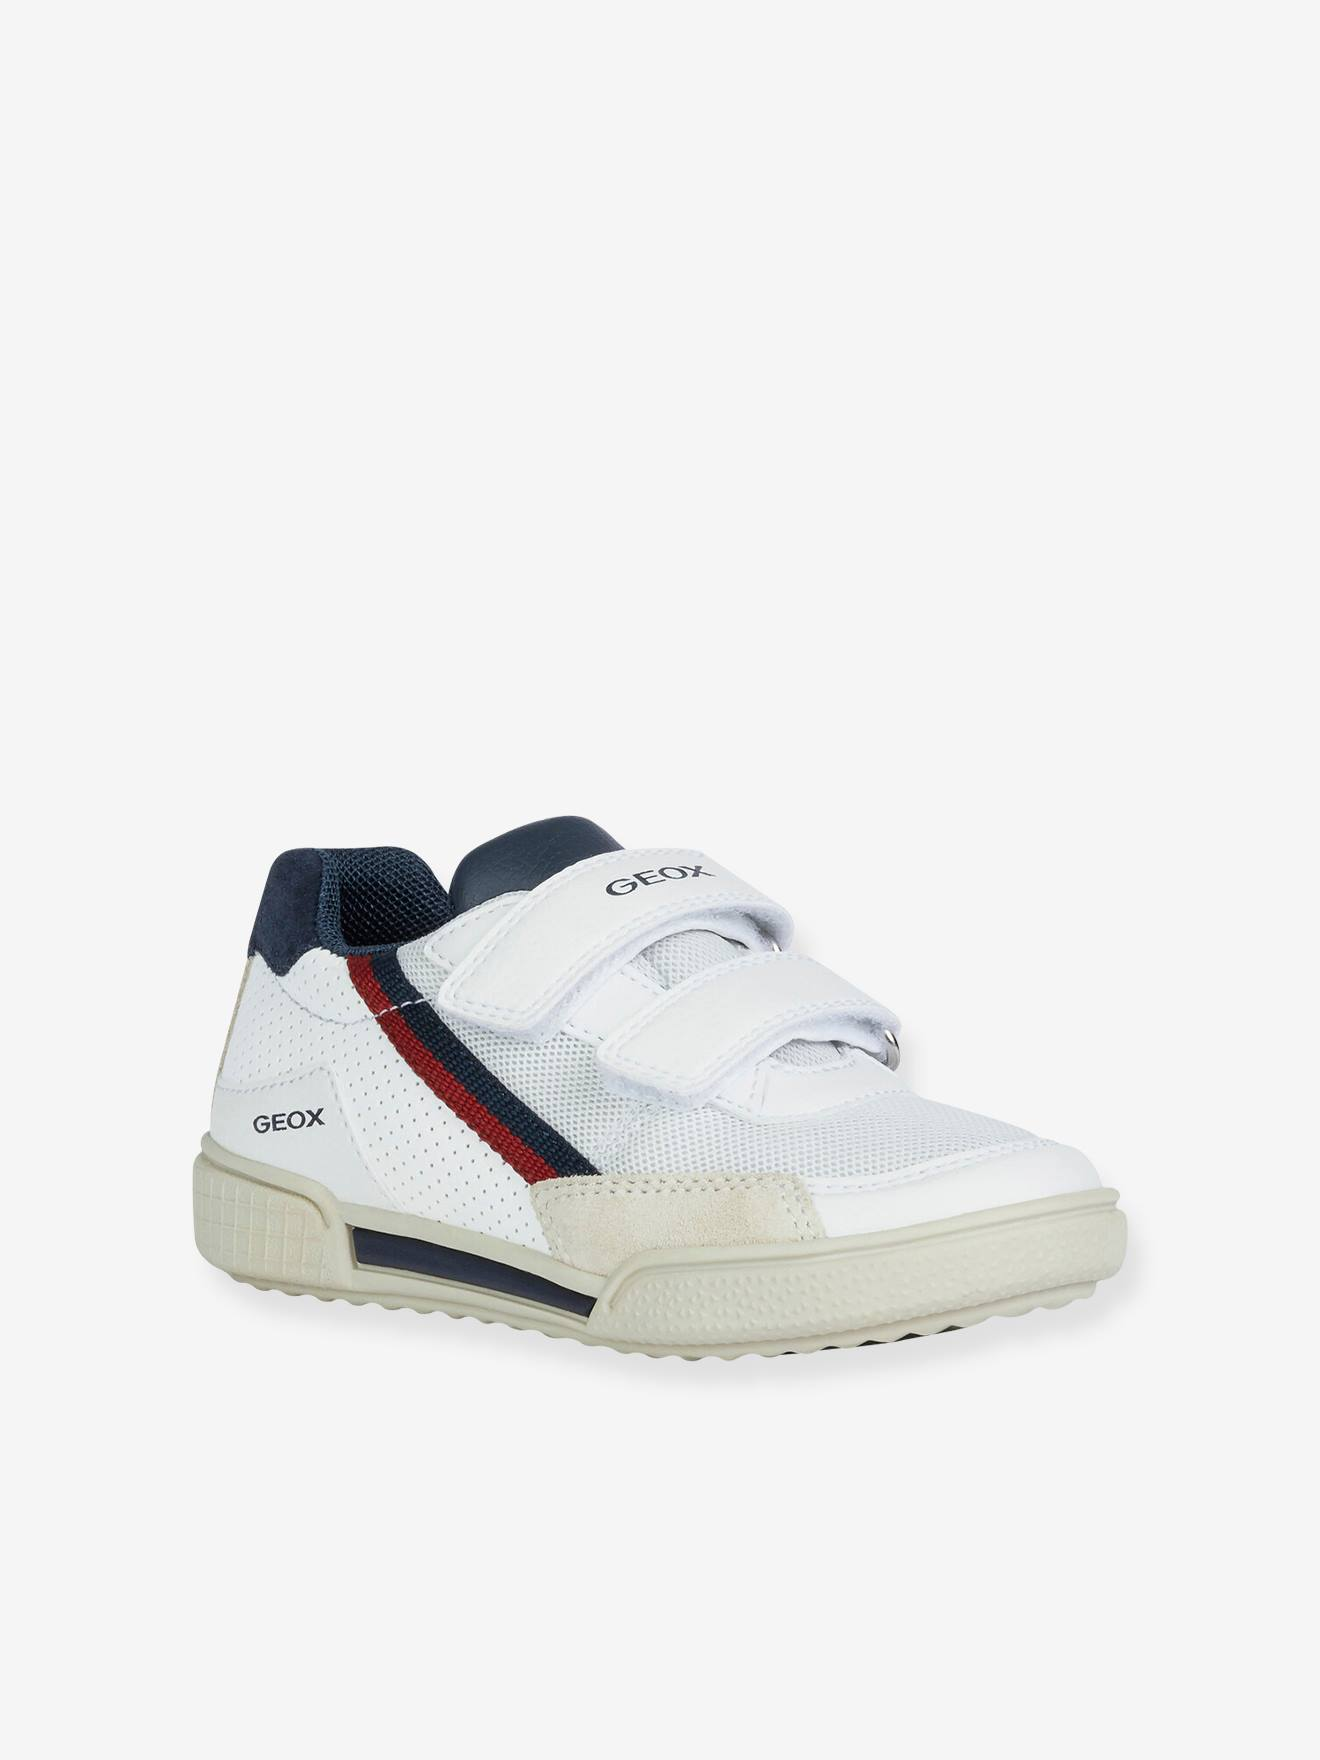 Trainers for Boys, Poseido by GEOX